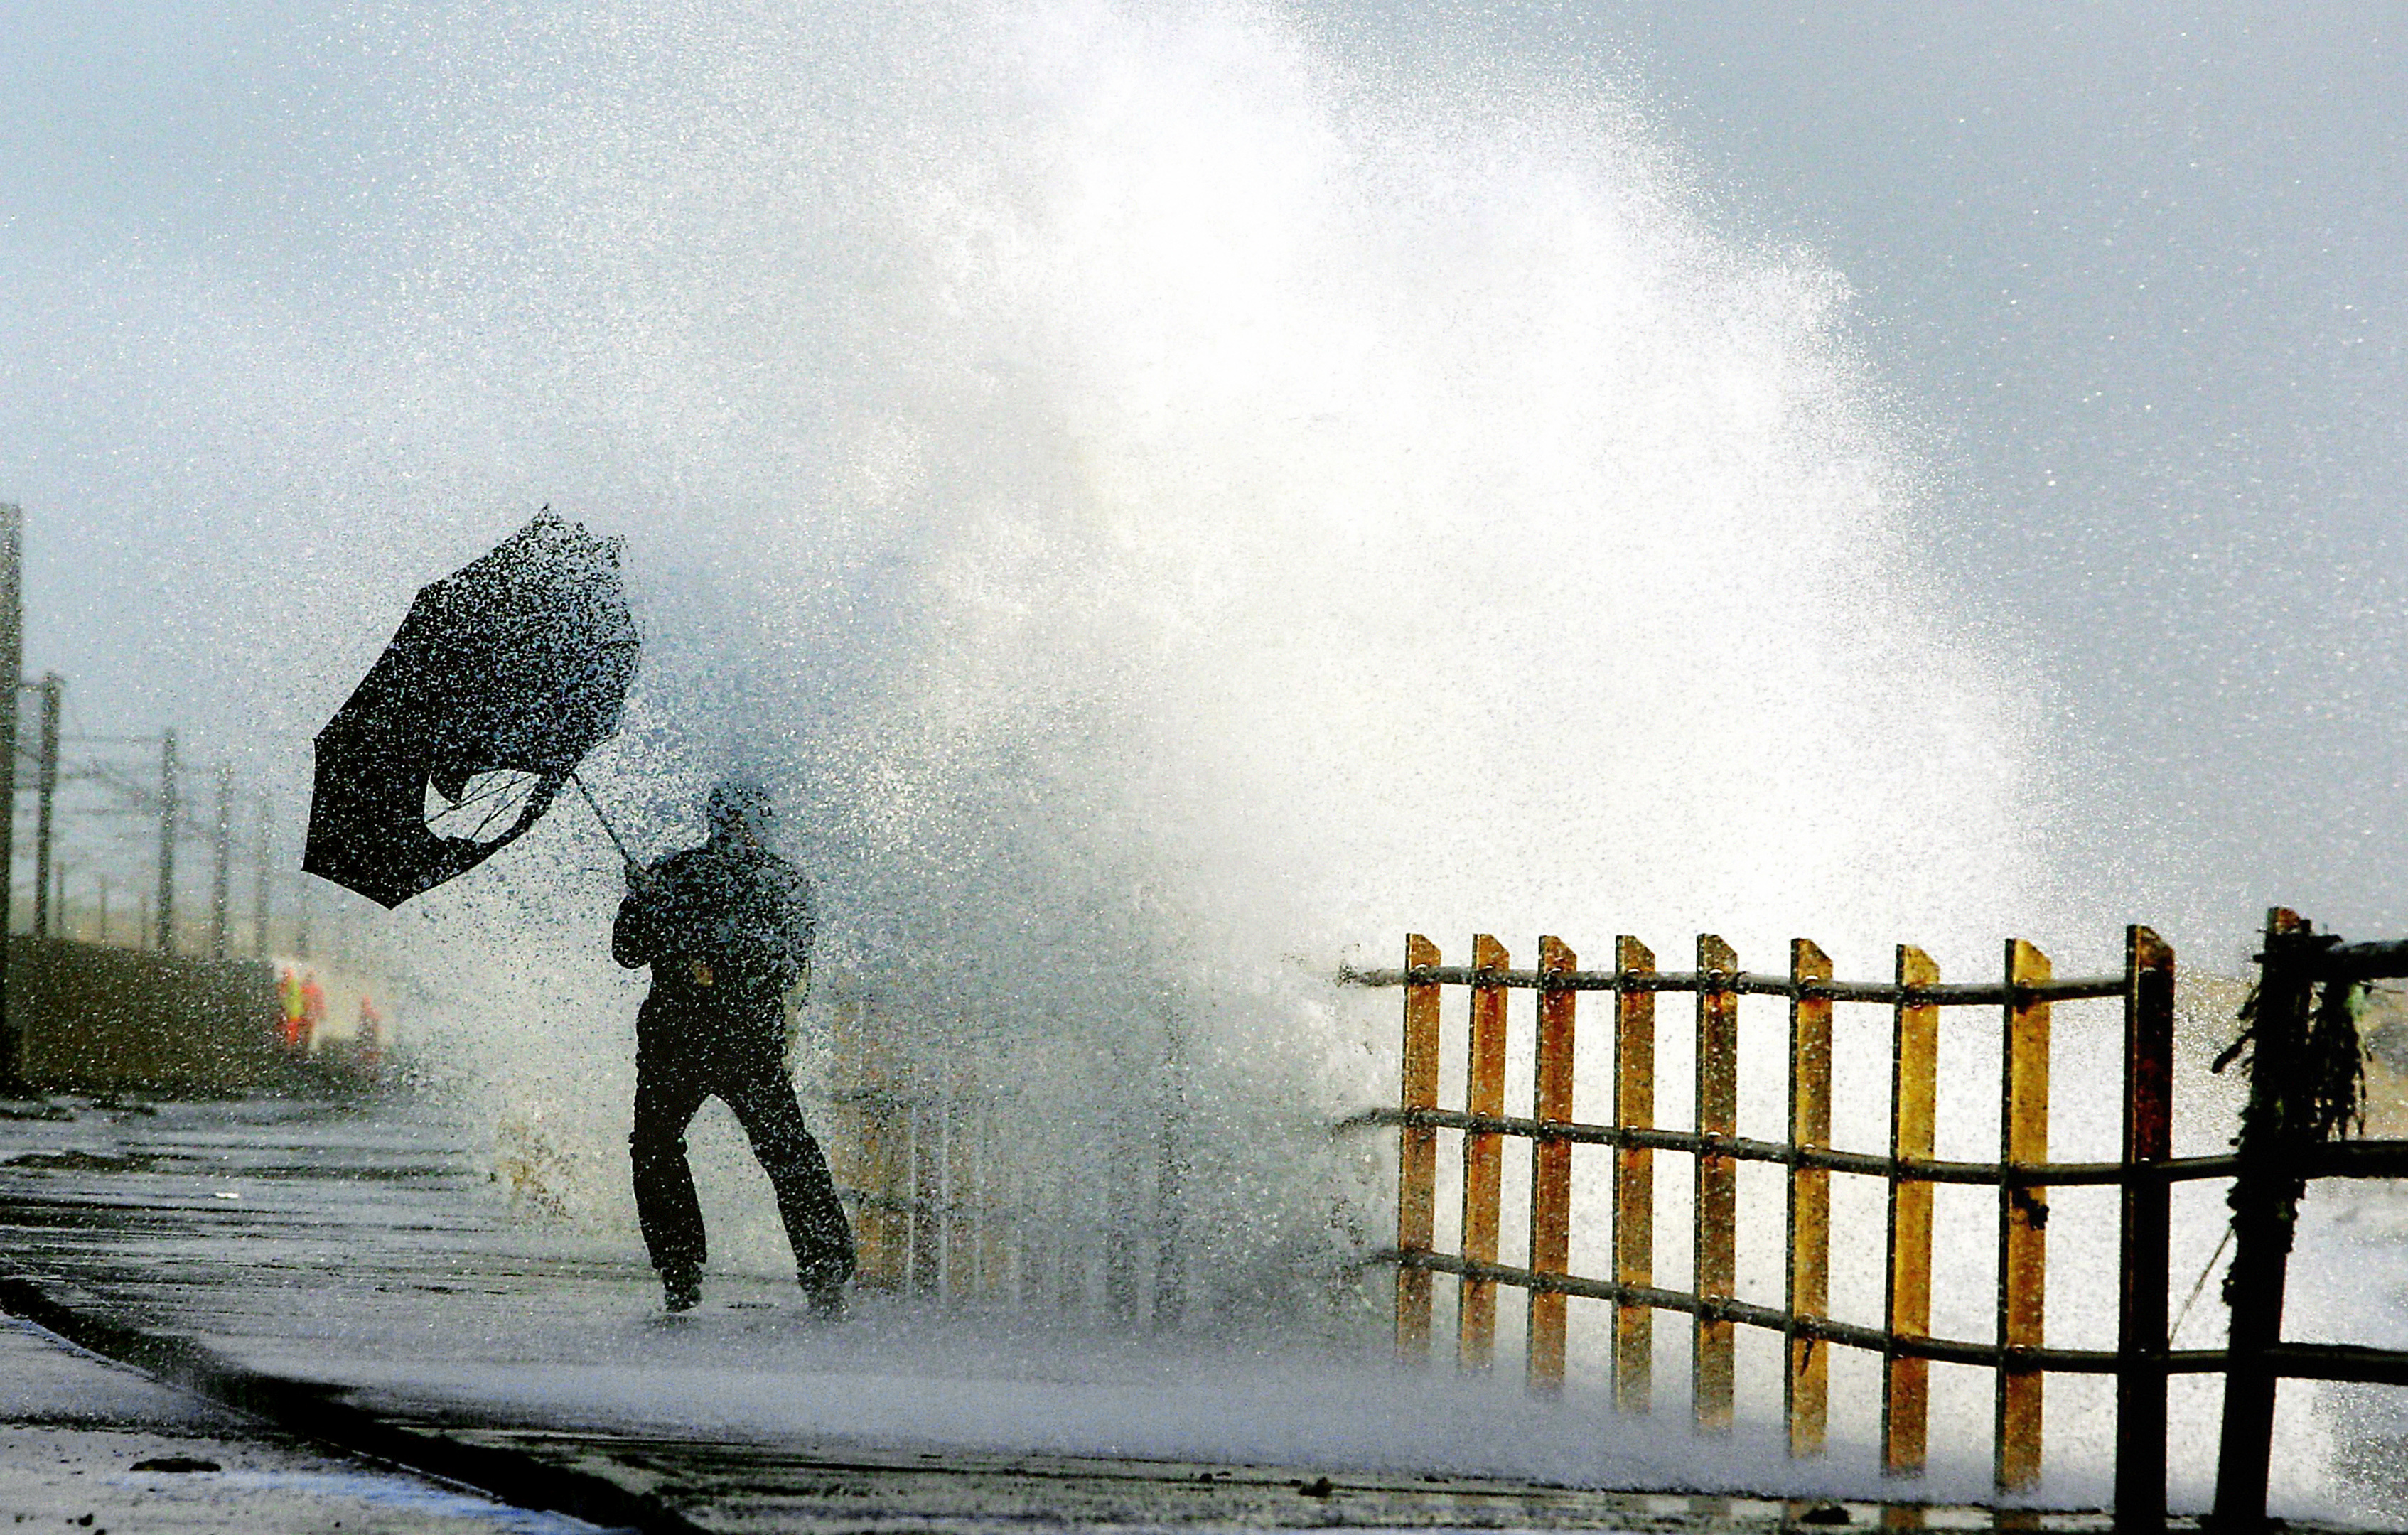 Scotland is set for a wet and windy Christmas